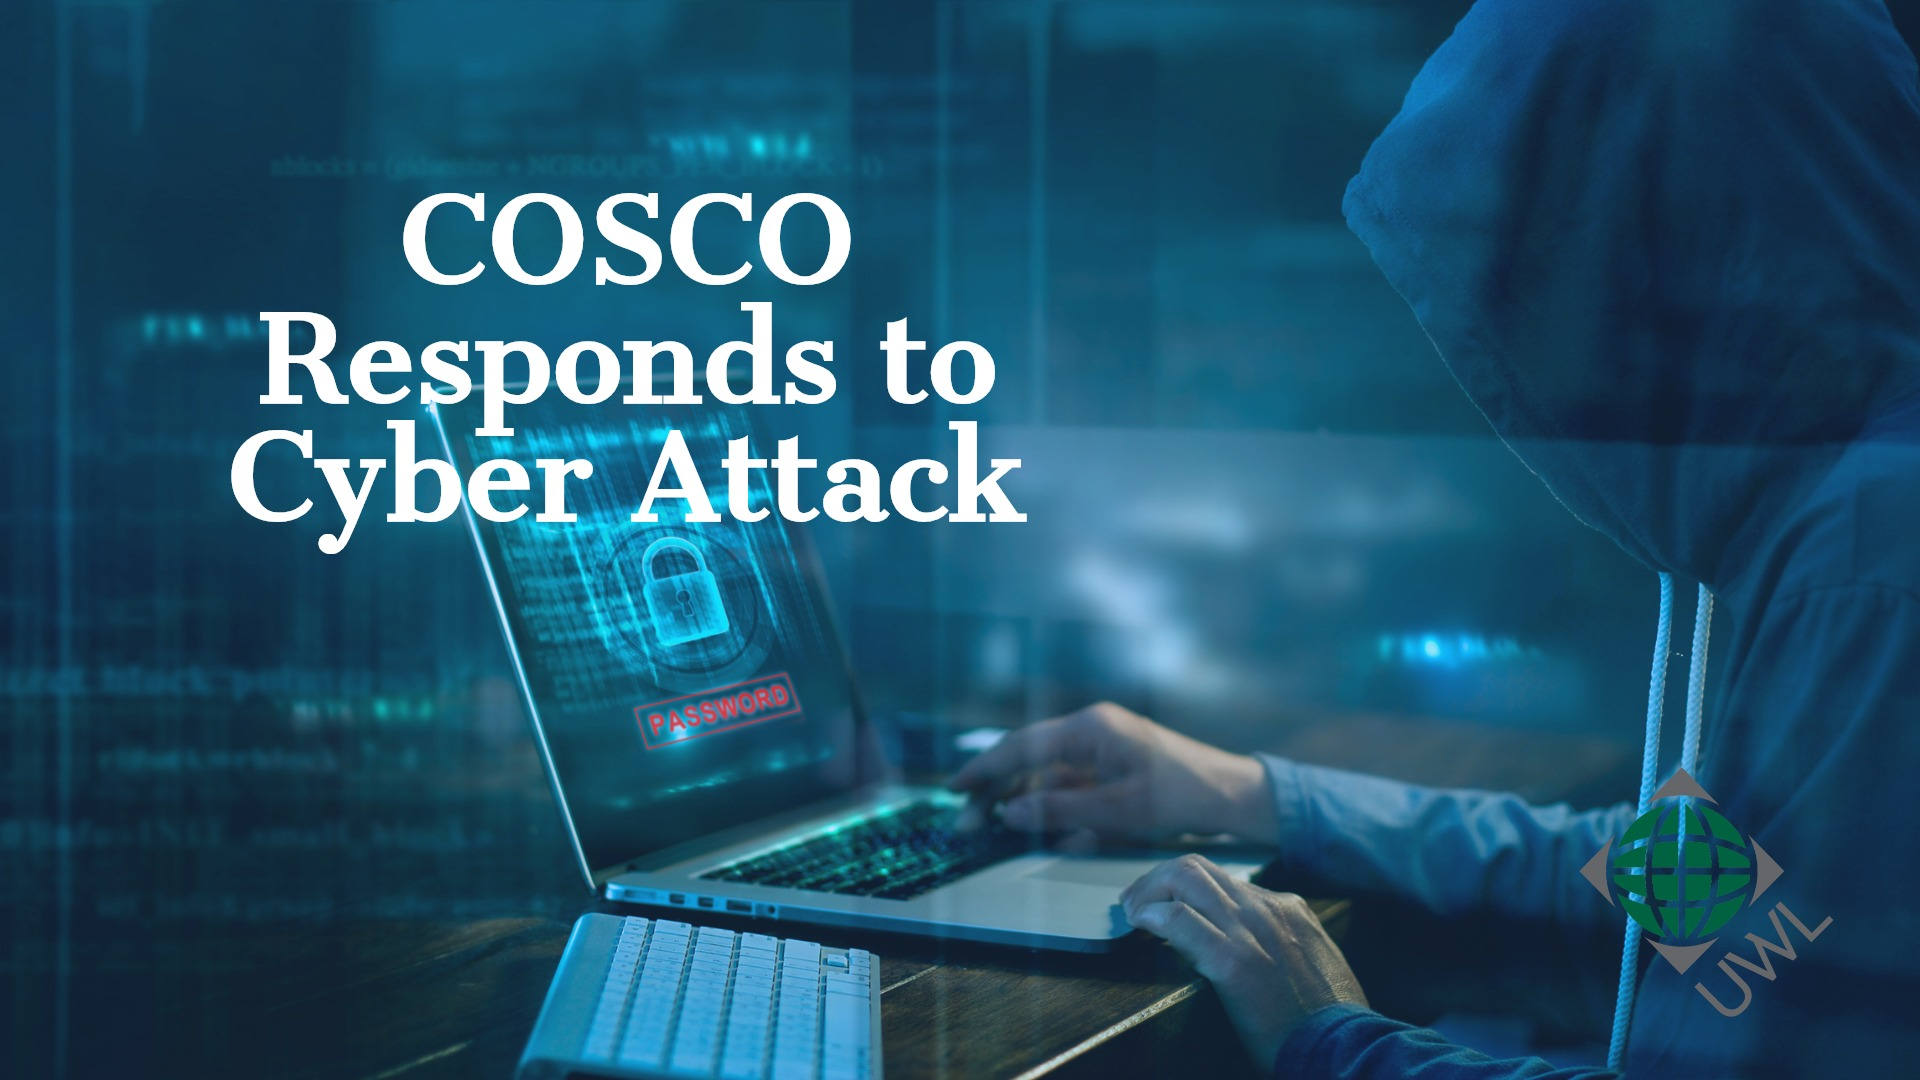 Cosco responds to cyber attack on US Operations